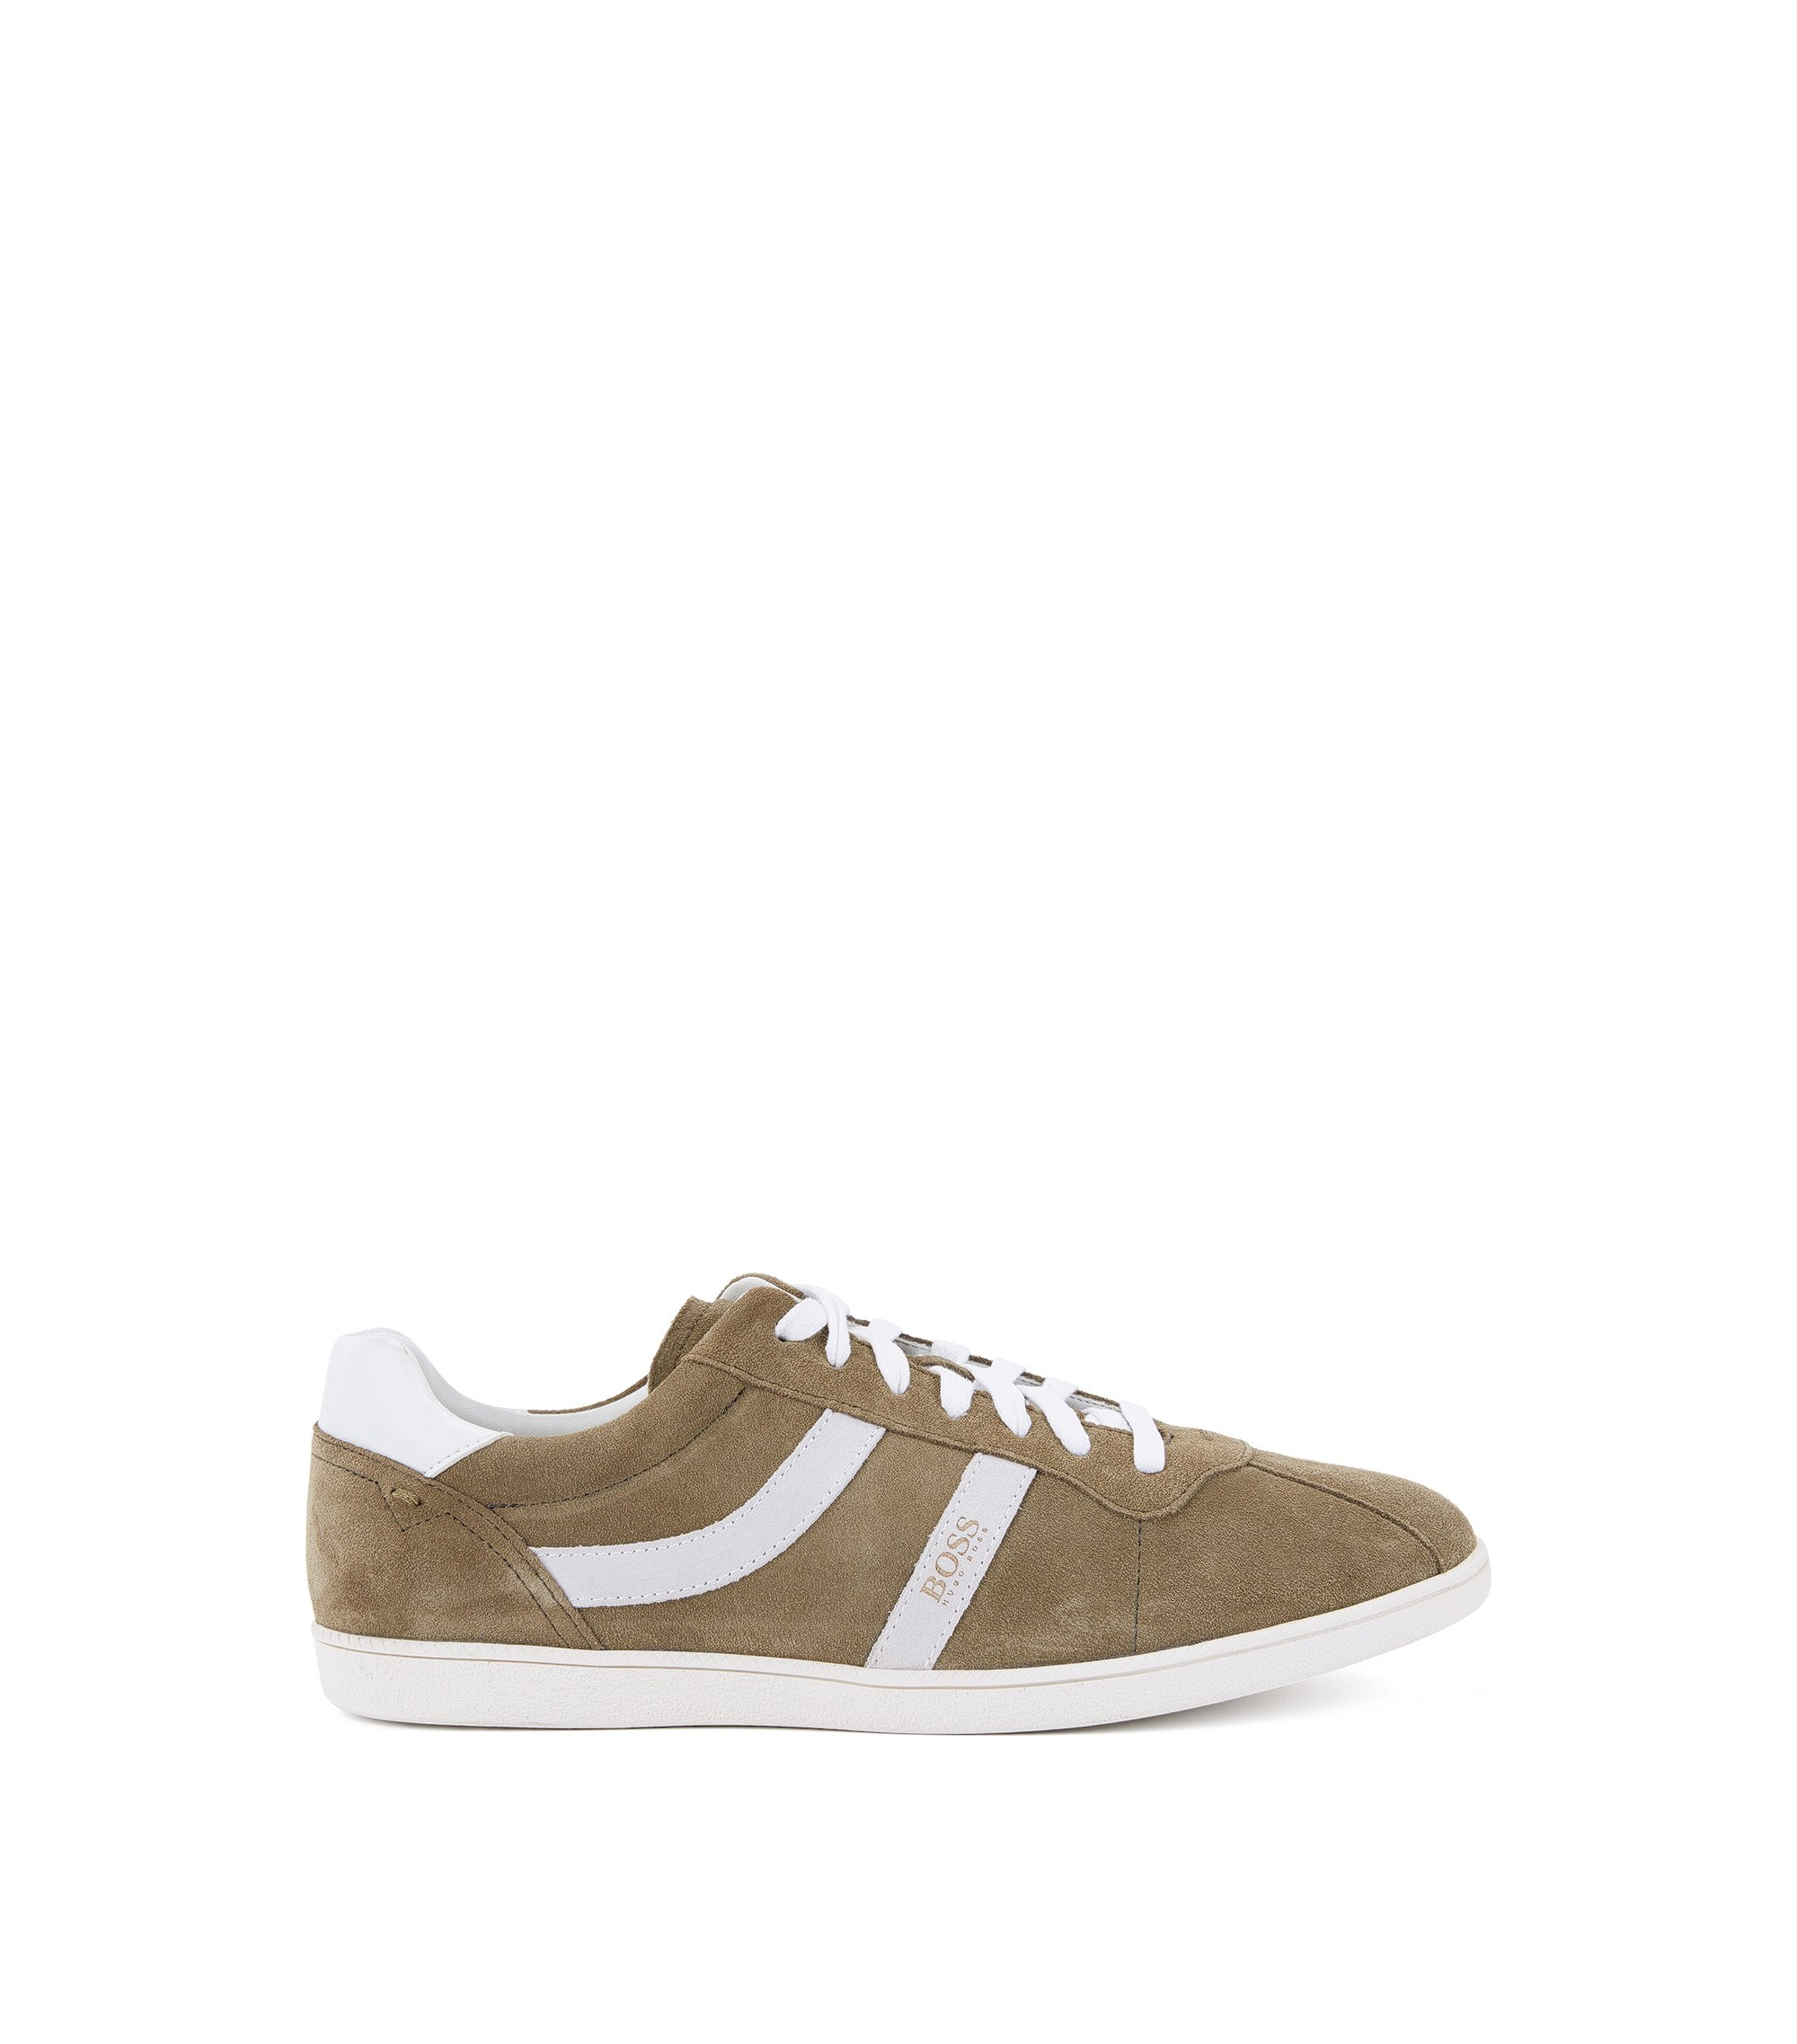 Low-top suede trainers with side stripes, Green